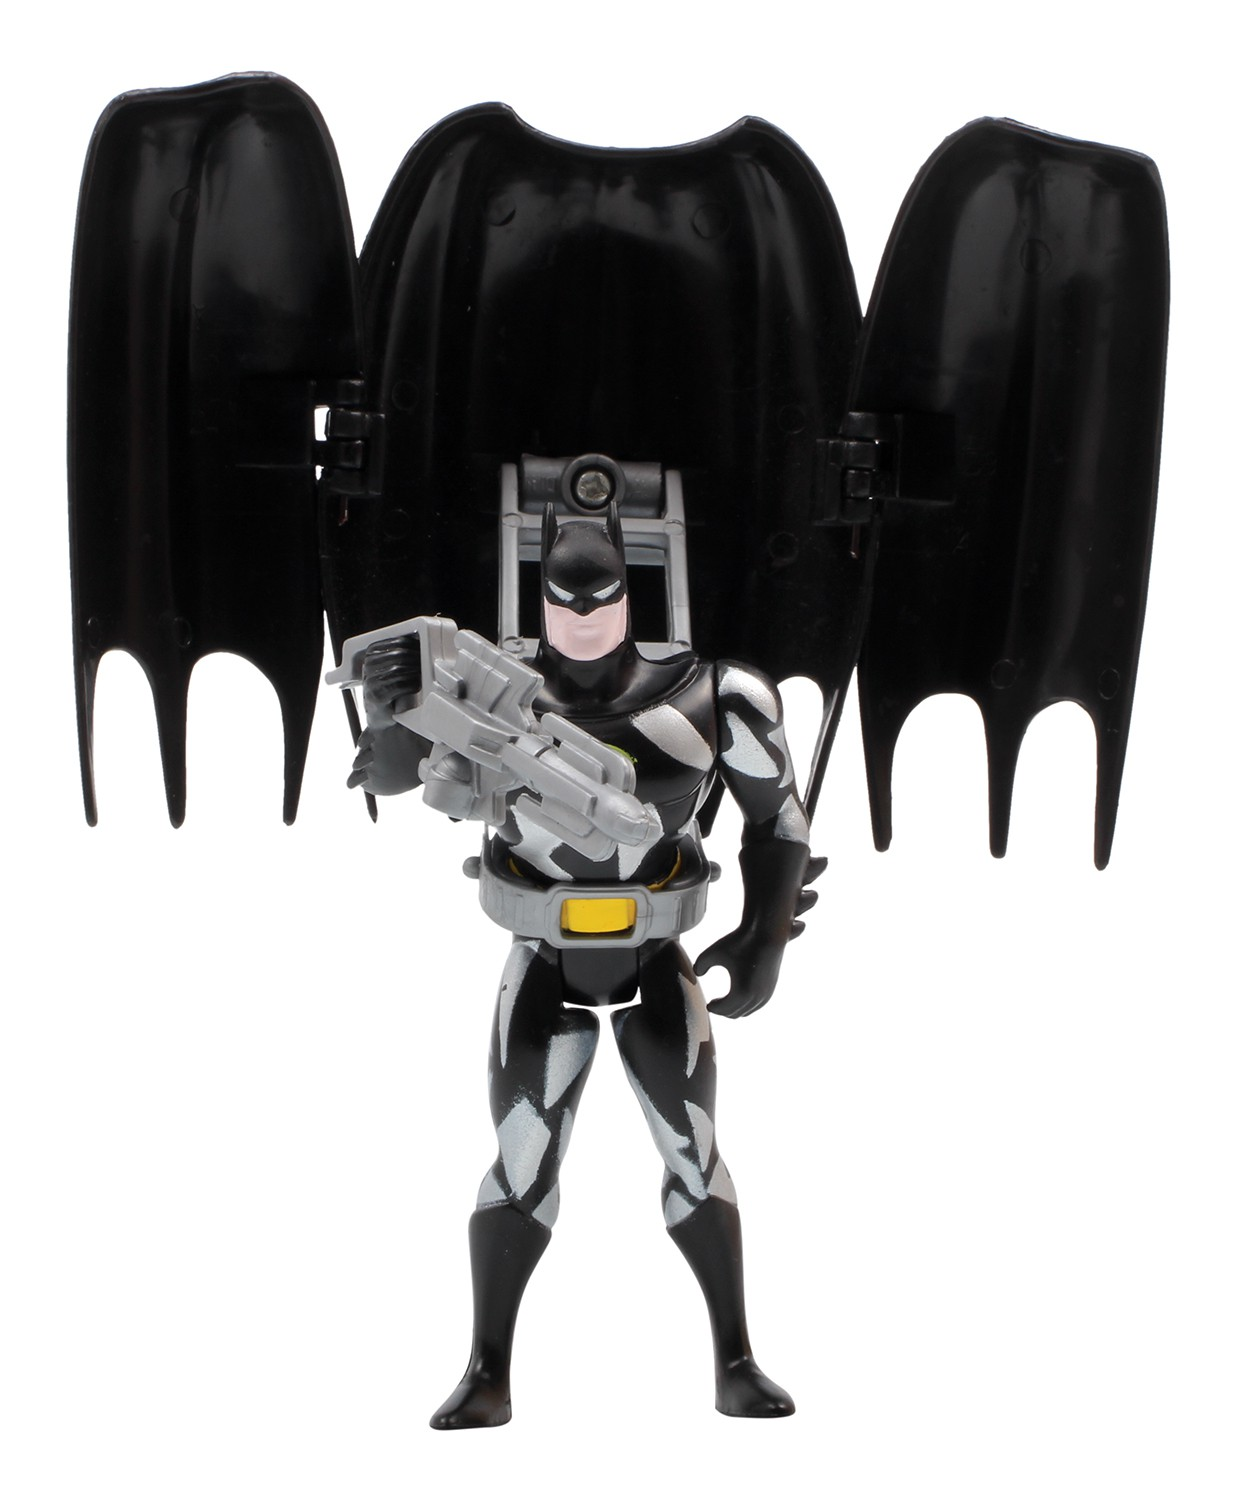 Funskool Lightning Strike Batman